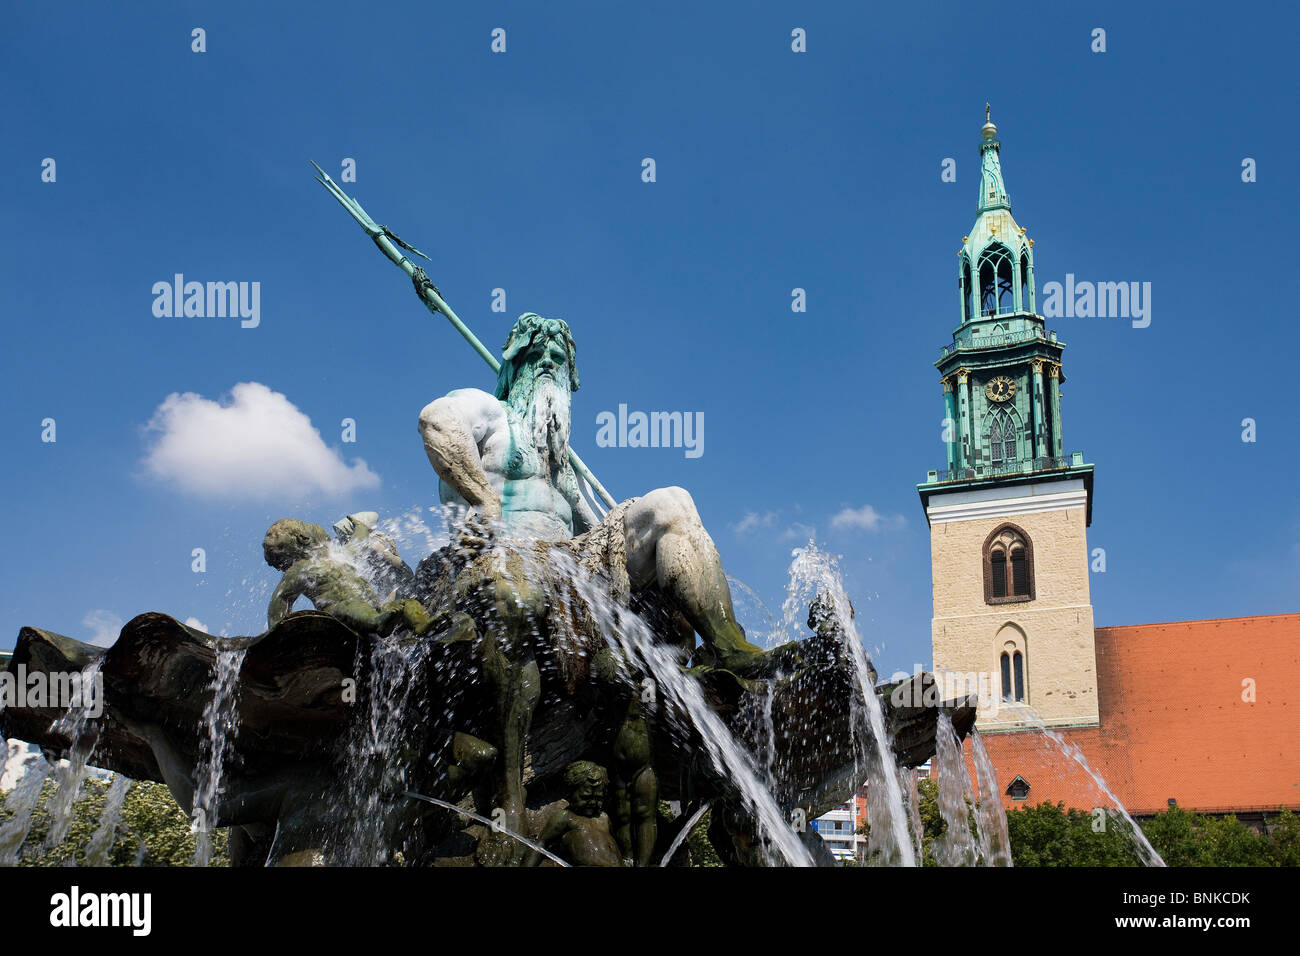 Germany Berlin town city Alexander's place television tower Marien's church well sculpture traveling tourism - Stock Image